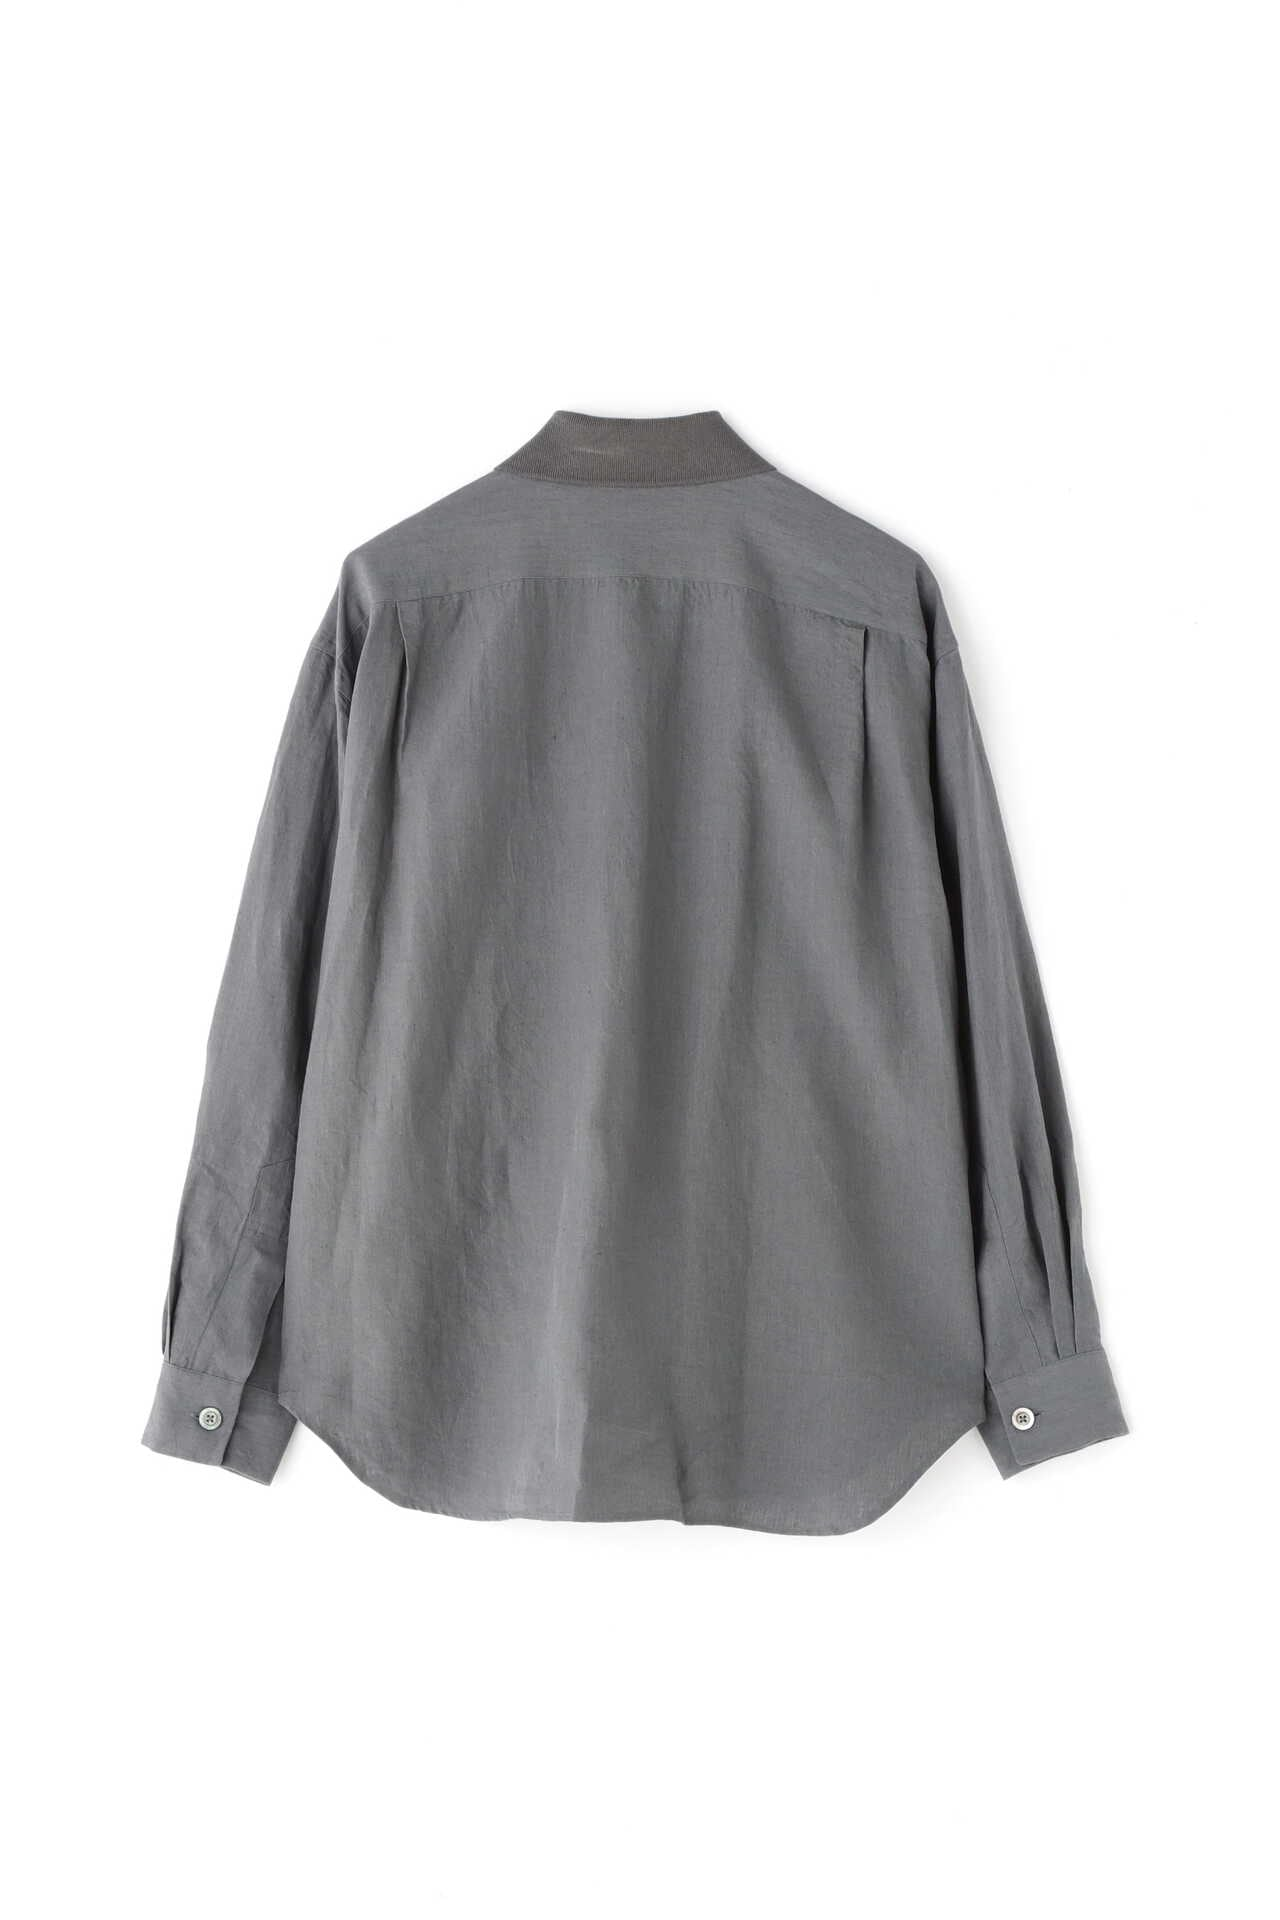 HIGHDENSE SHIRTING LINEN7